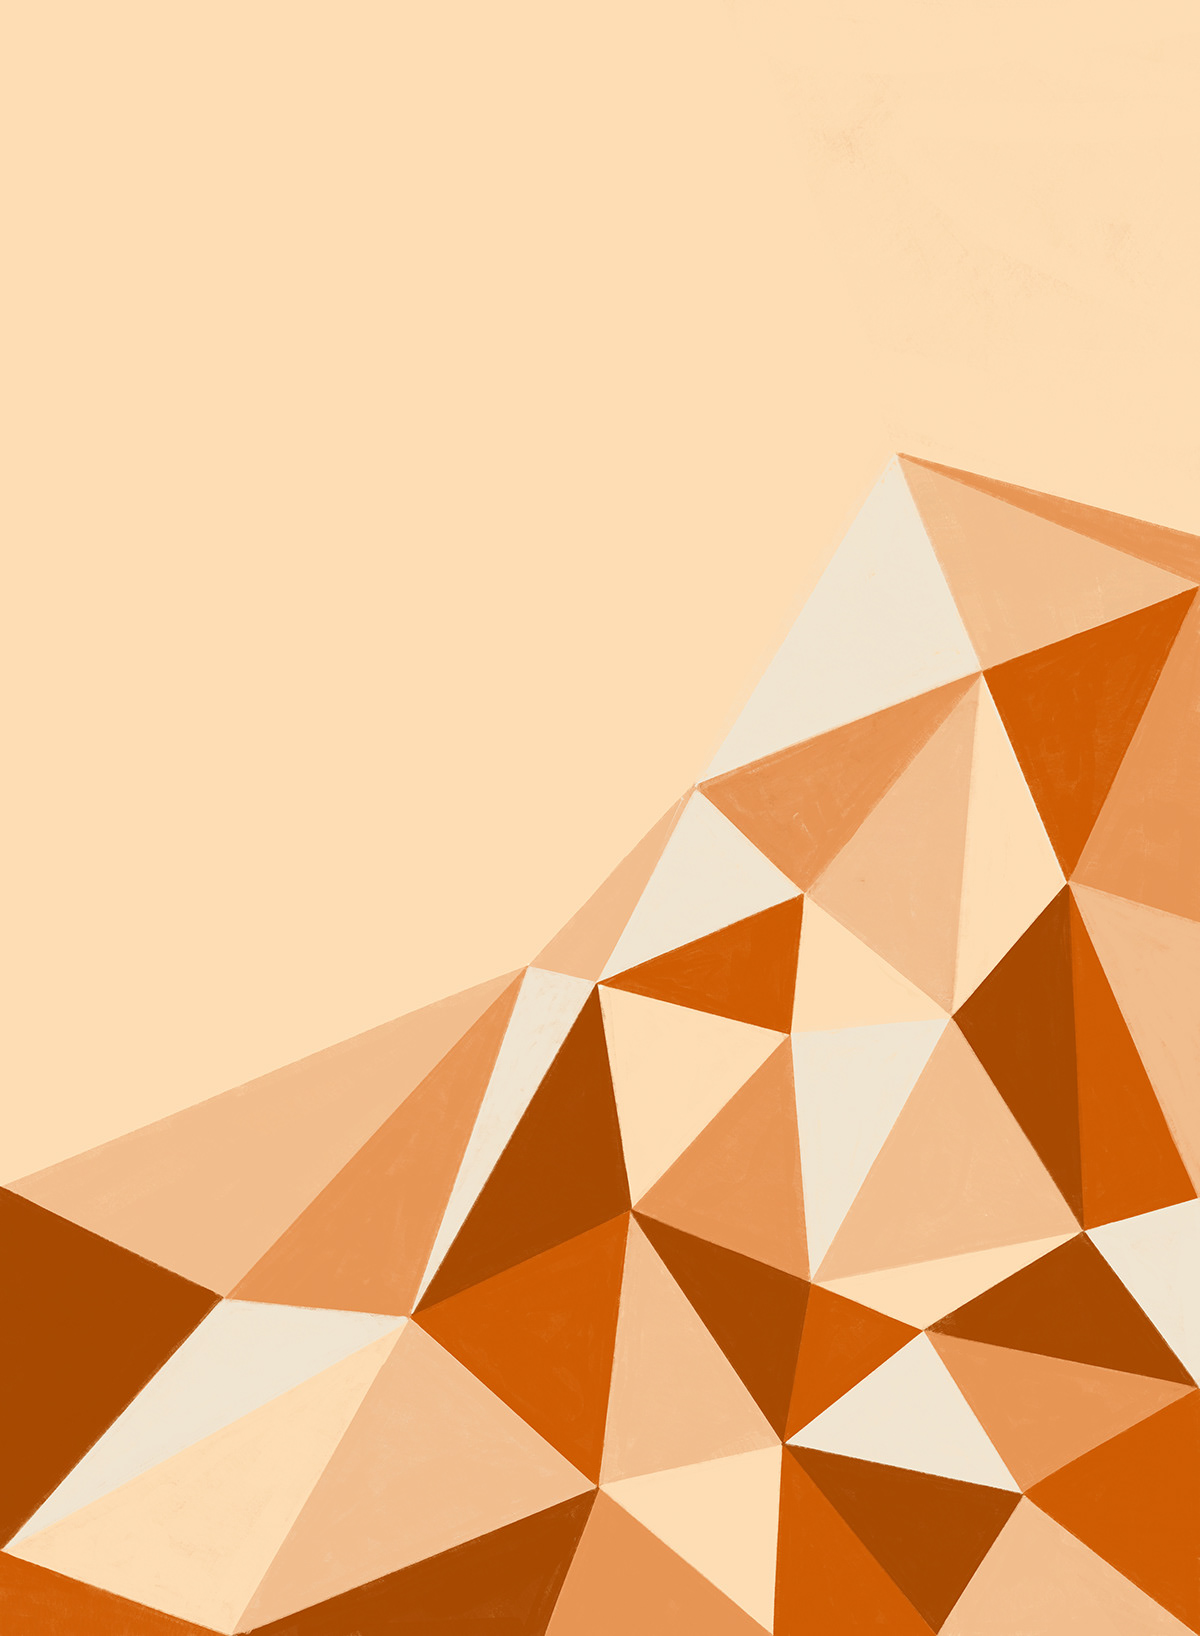 Abstract geometric study in salted caramel color palette.